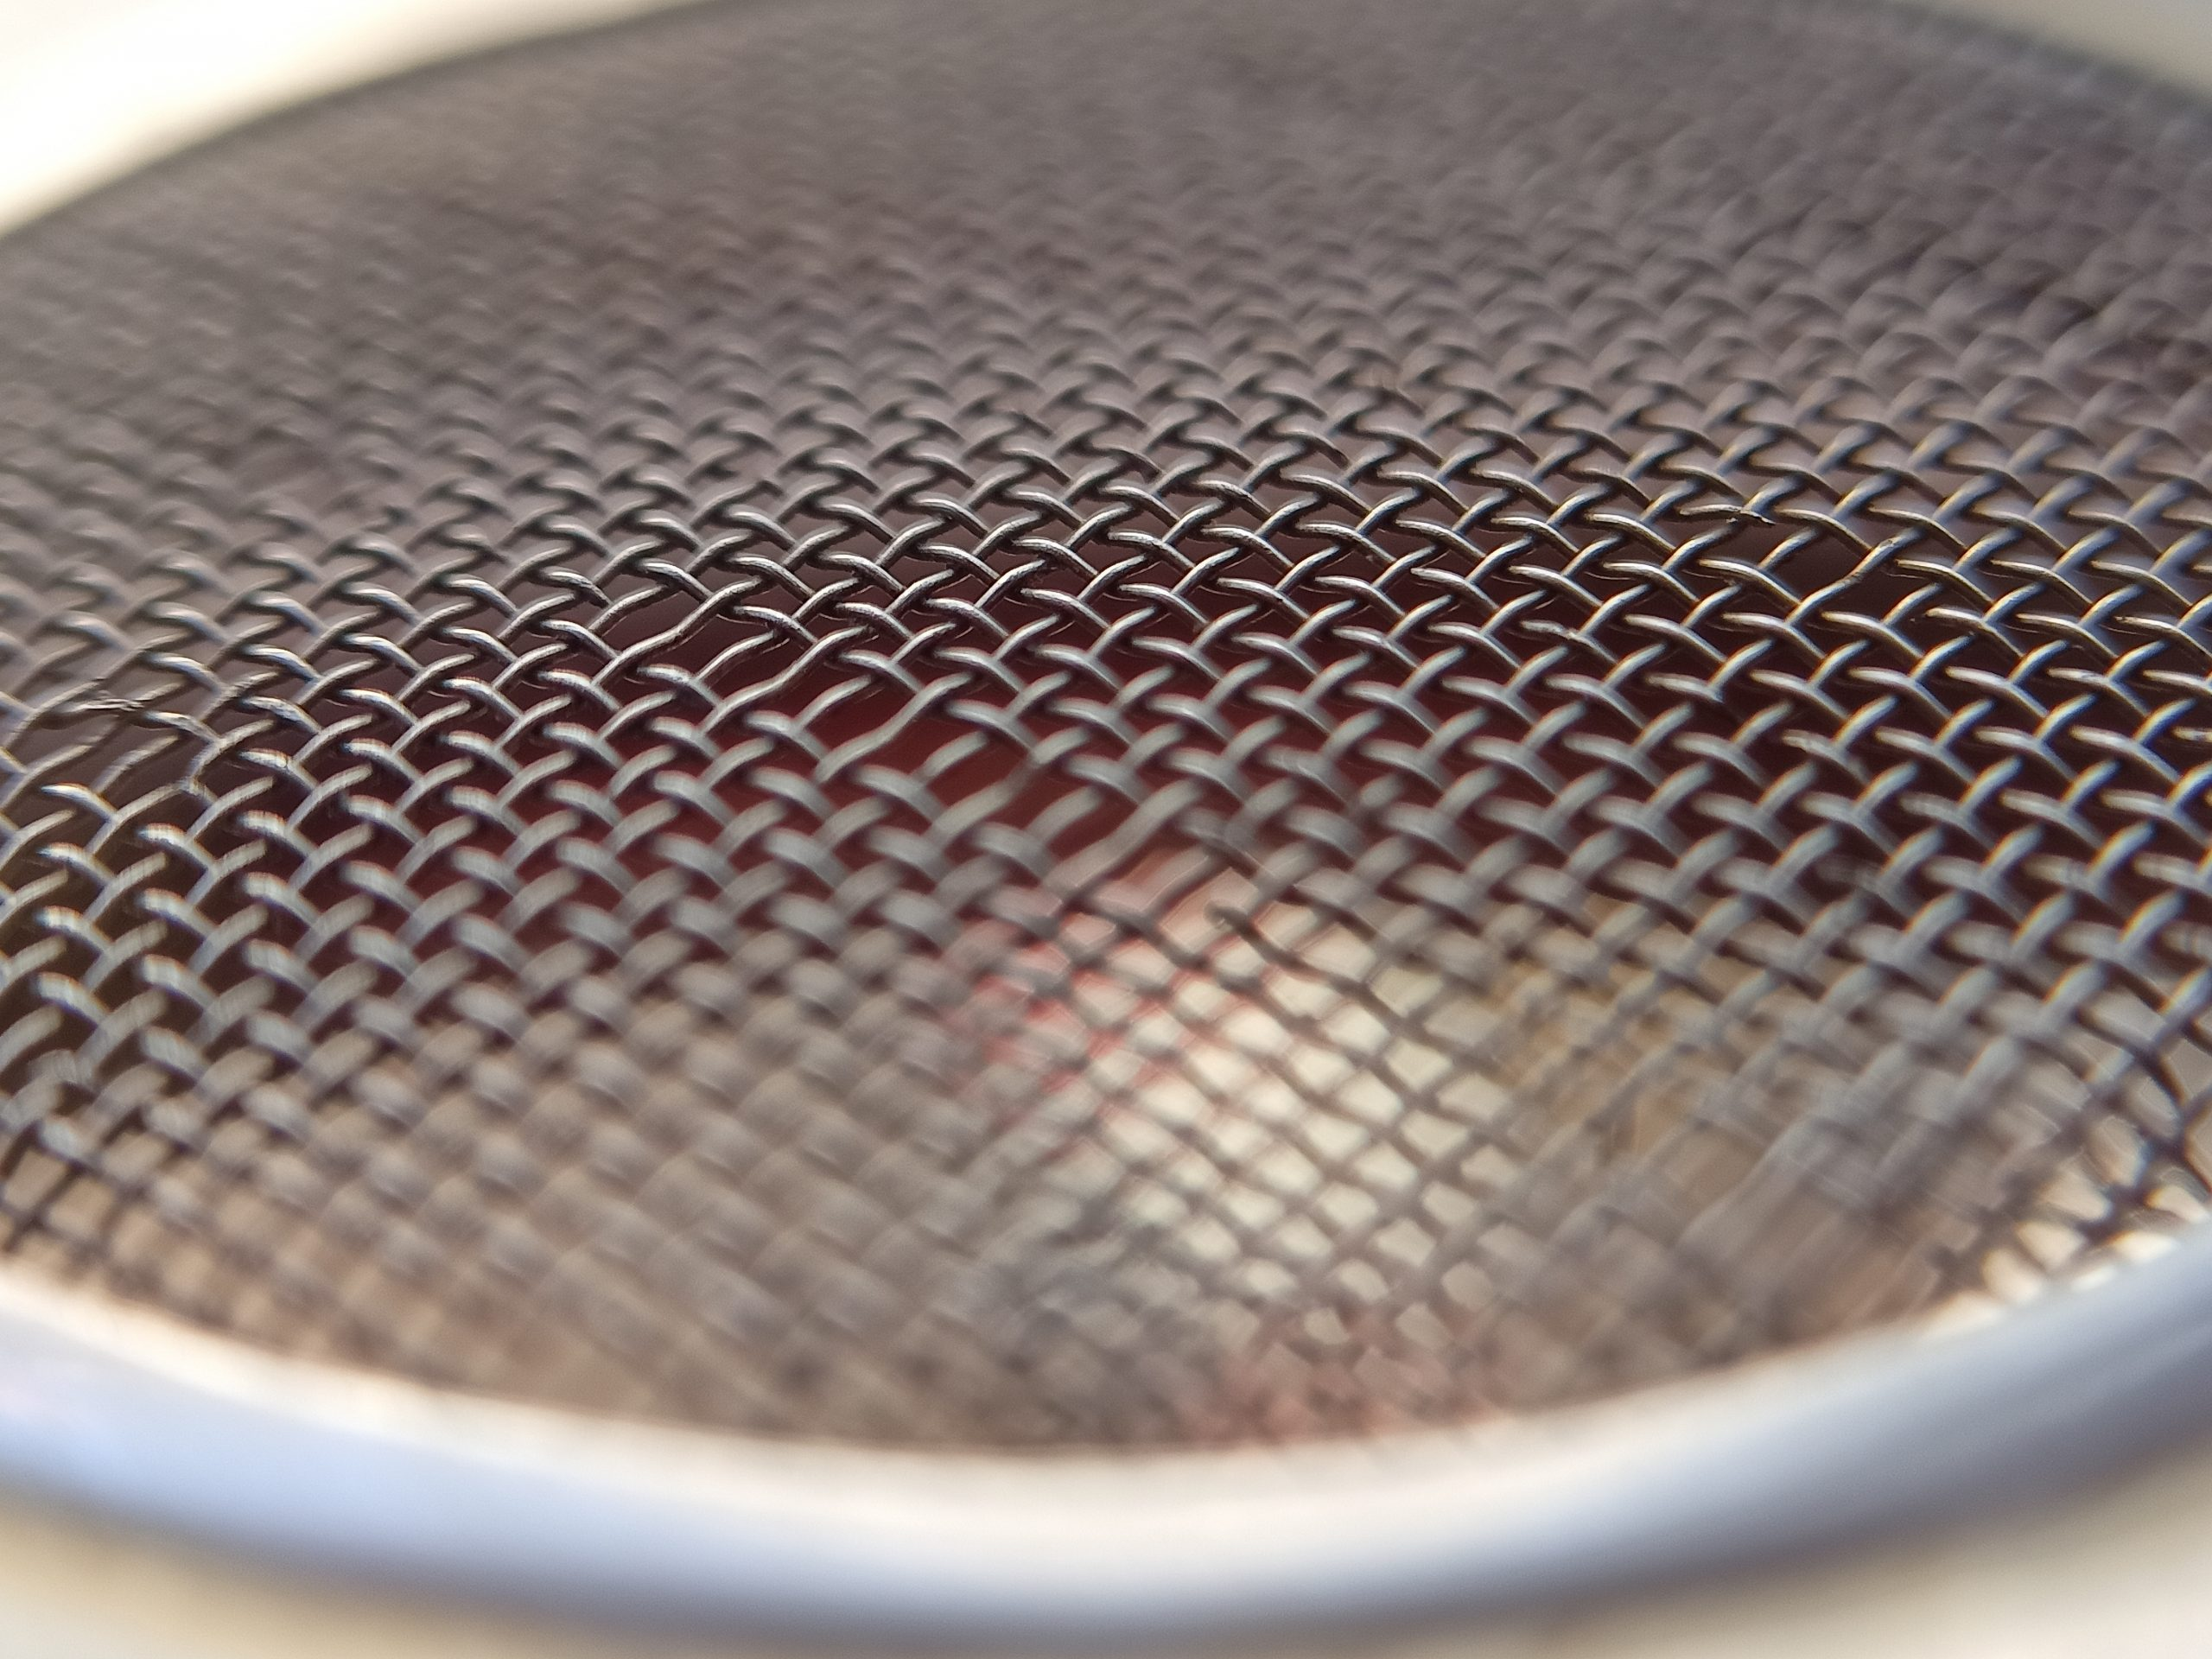 A wire mesh